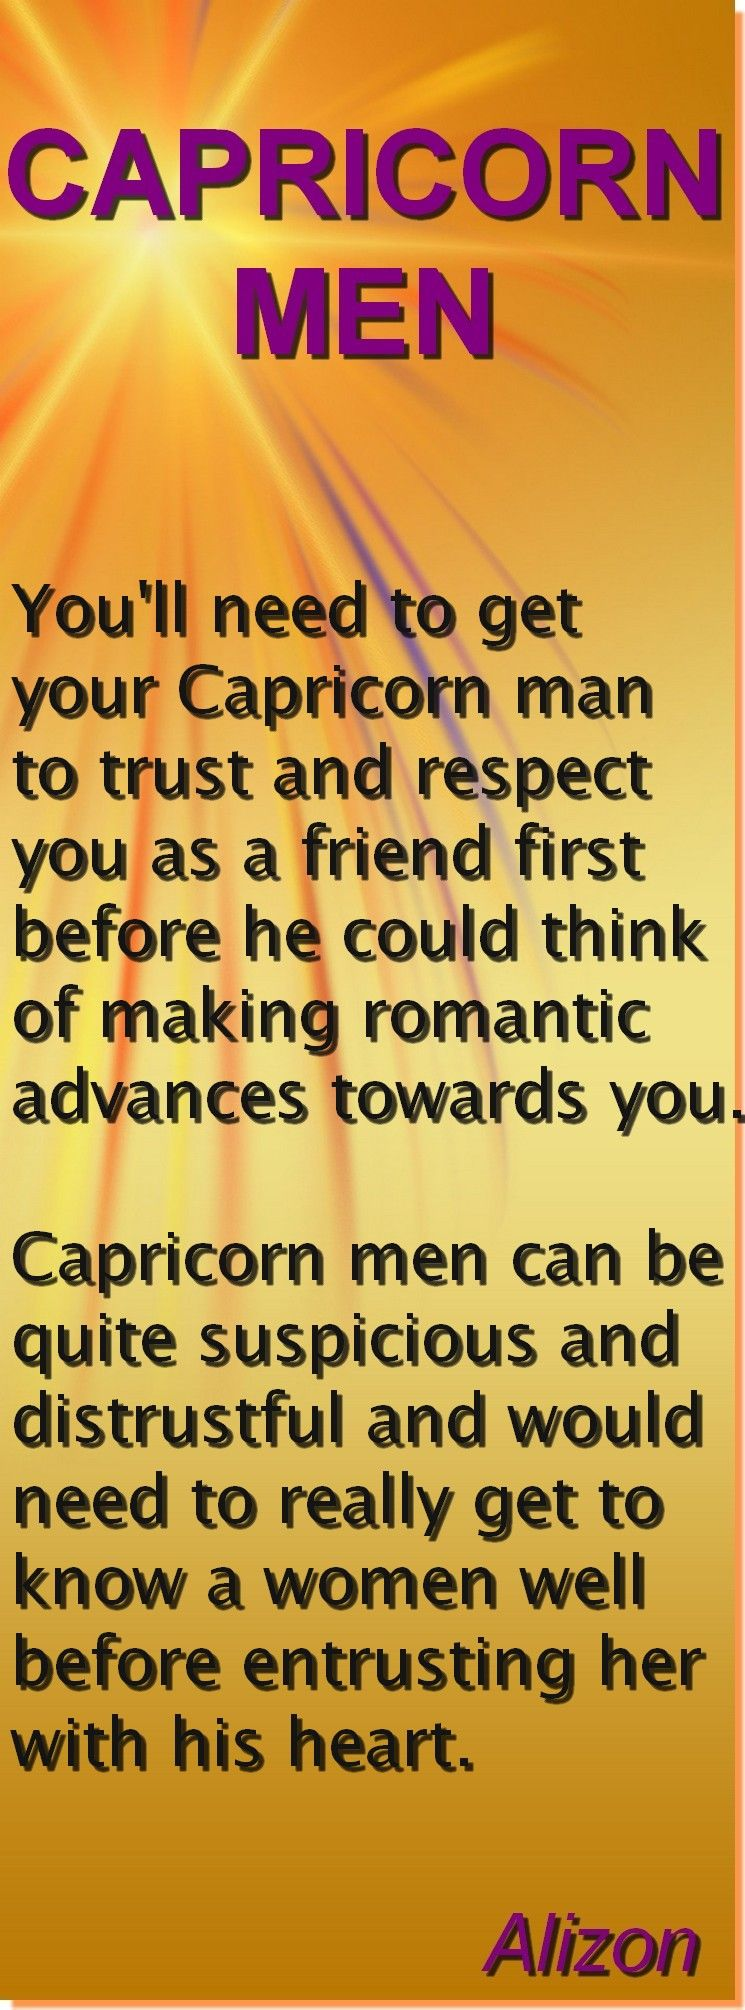 How to impress a capricorn man